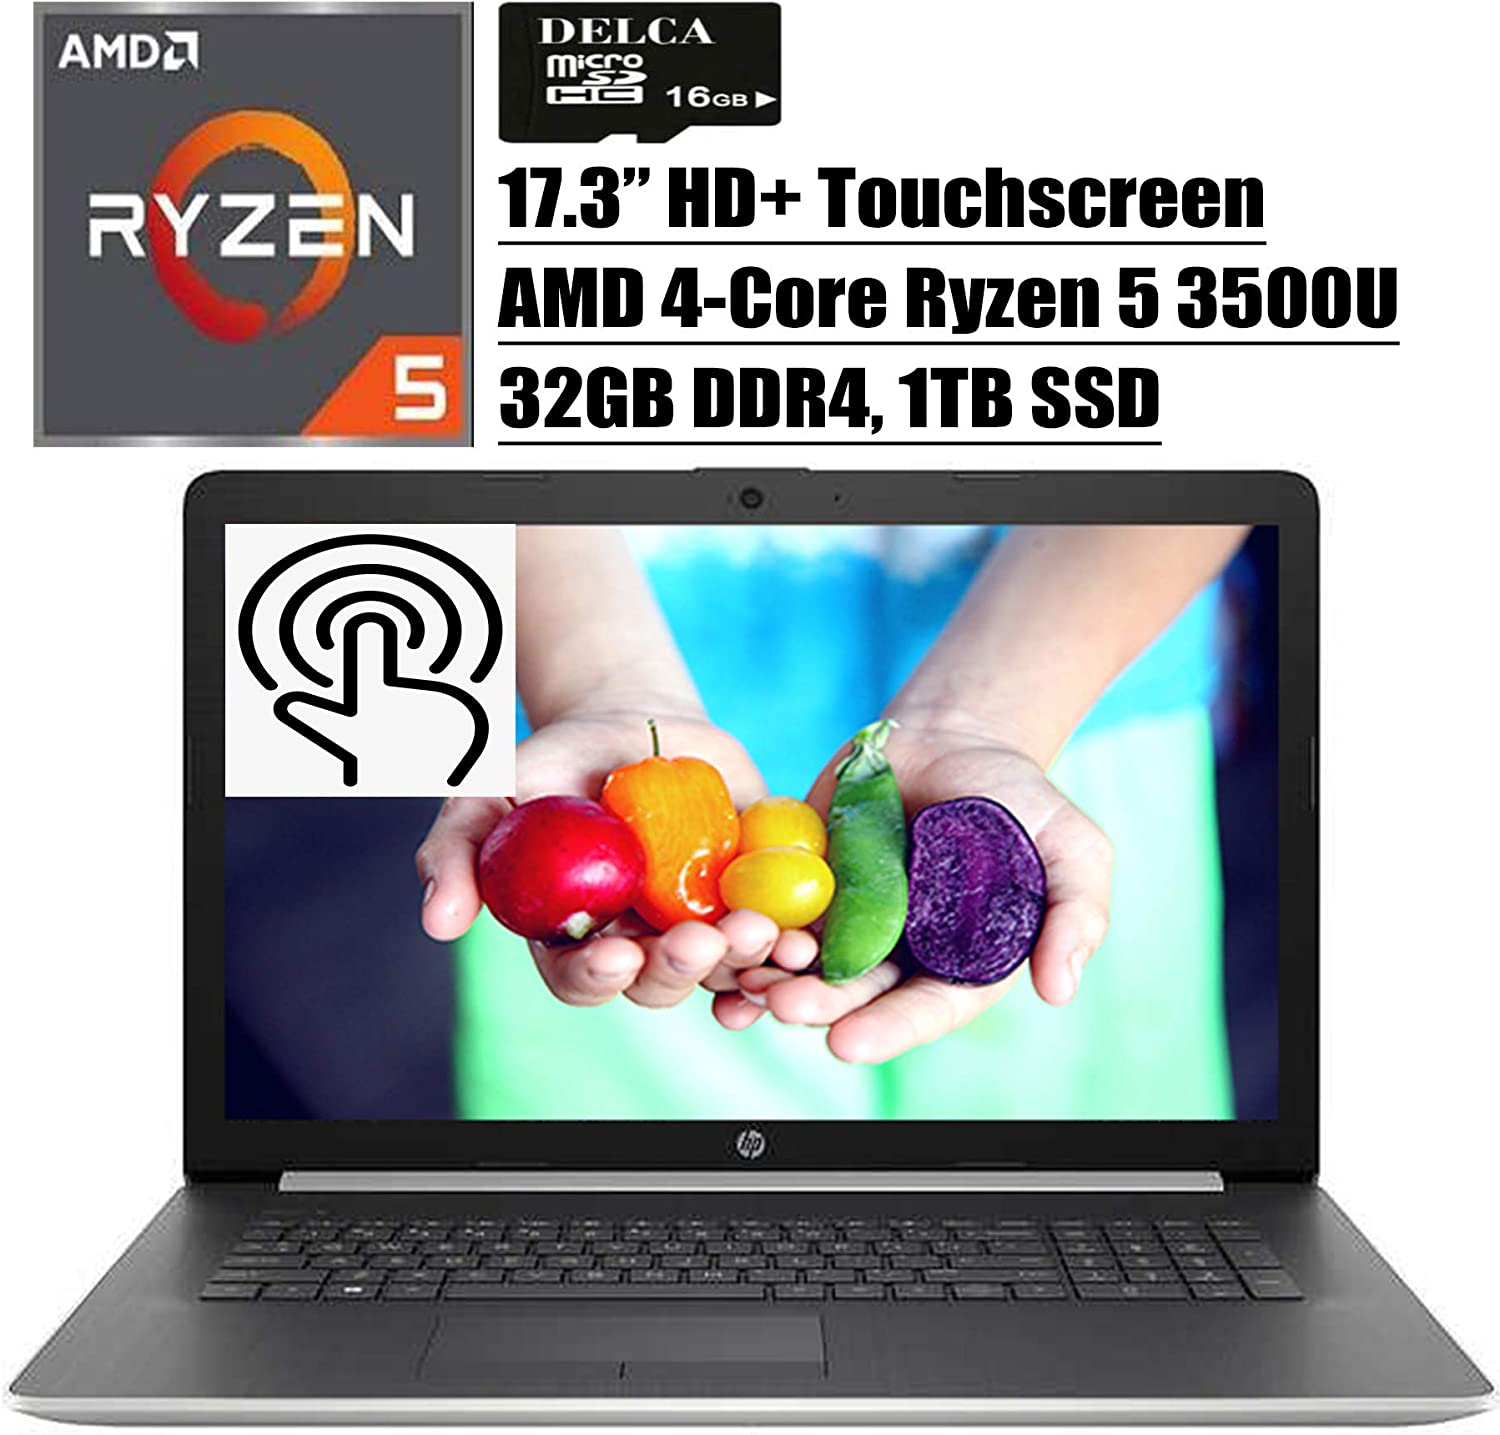 "HP 17 2020 Newest Premium Laptop Computer I 17.3"" HD+ Touchscreen I AMD Quad-Core Ryzen 5 3500U (>i7-7500U) I 32GB DDR4 1TB SSD I WiFi HDMI Backlit KB DVD Win 10 + Delca 16GB Micro SD Card"" /><span class='sale_a_proc'>-48%</span></a></div> <div class="